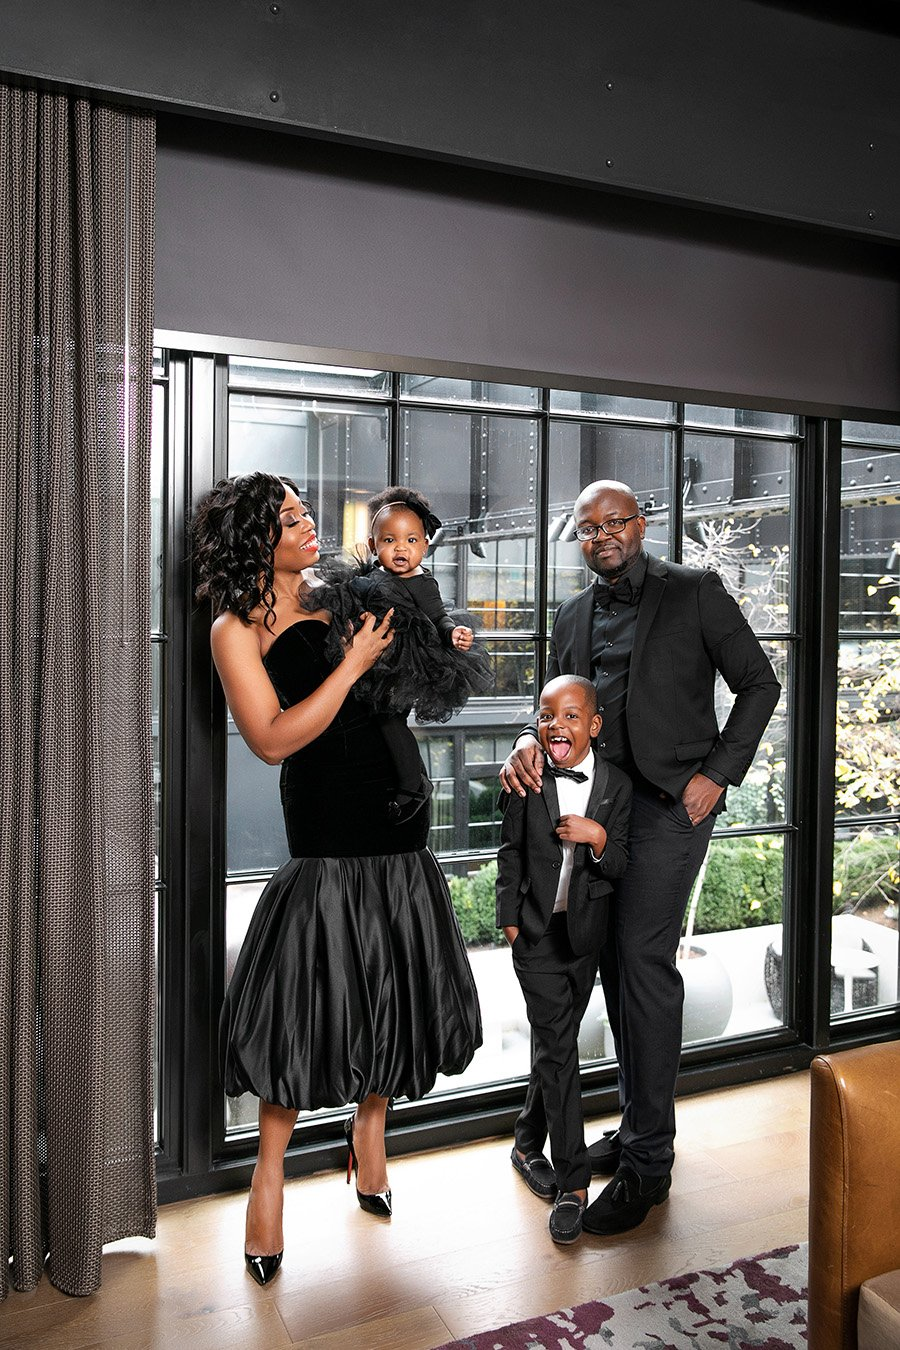 Stella Adewunmi of Jadore-Fashion shares new year with family at Sagamore Pendry